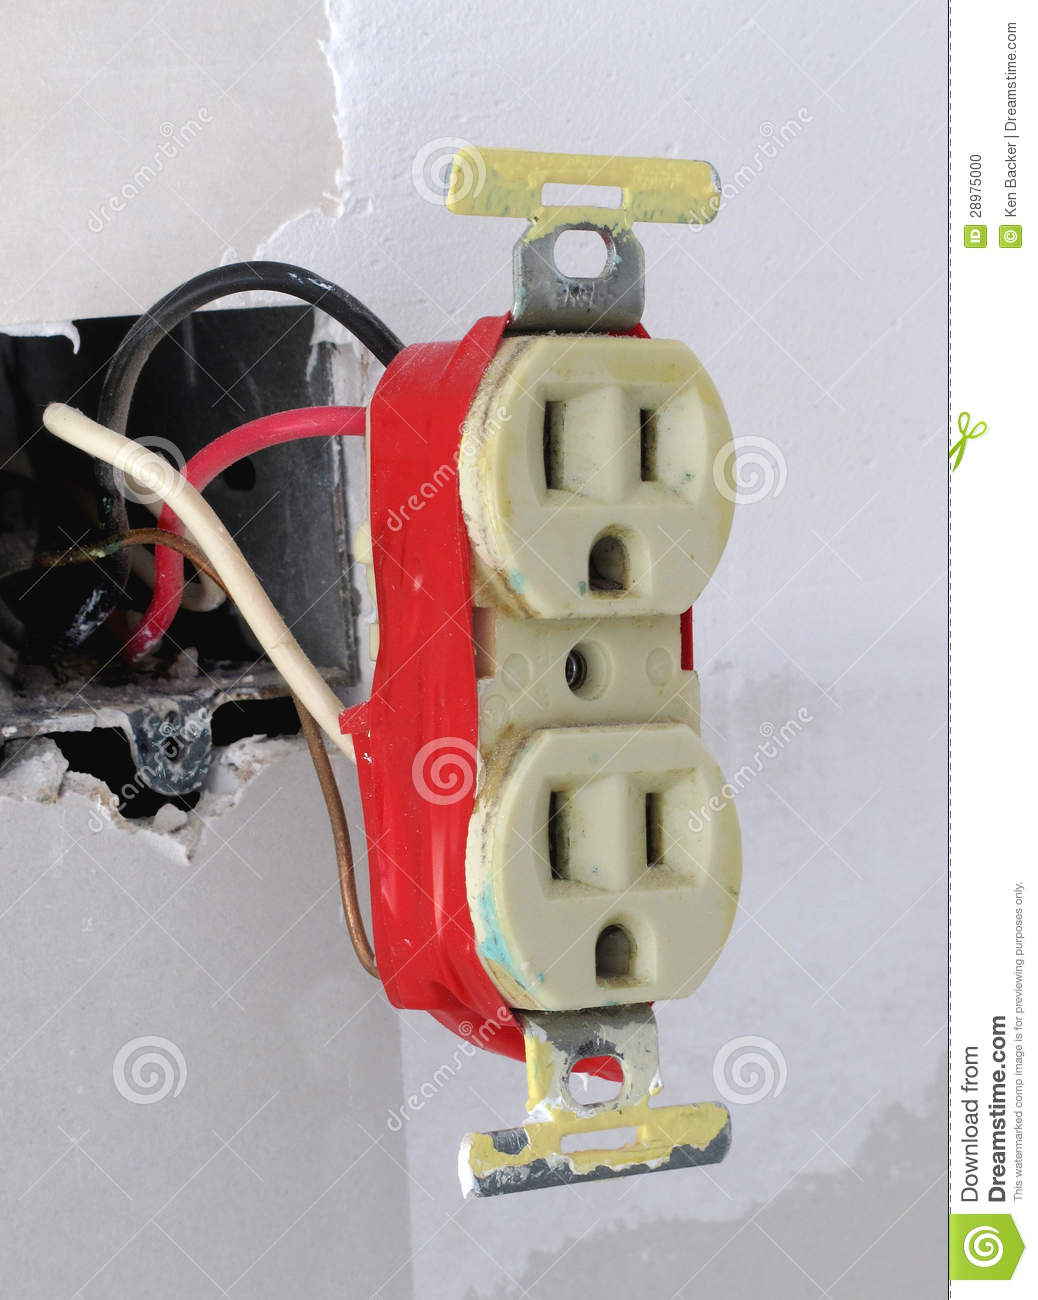 hight resolution of two plug electrical outlet